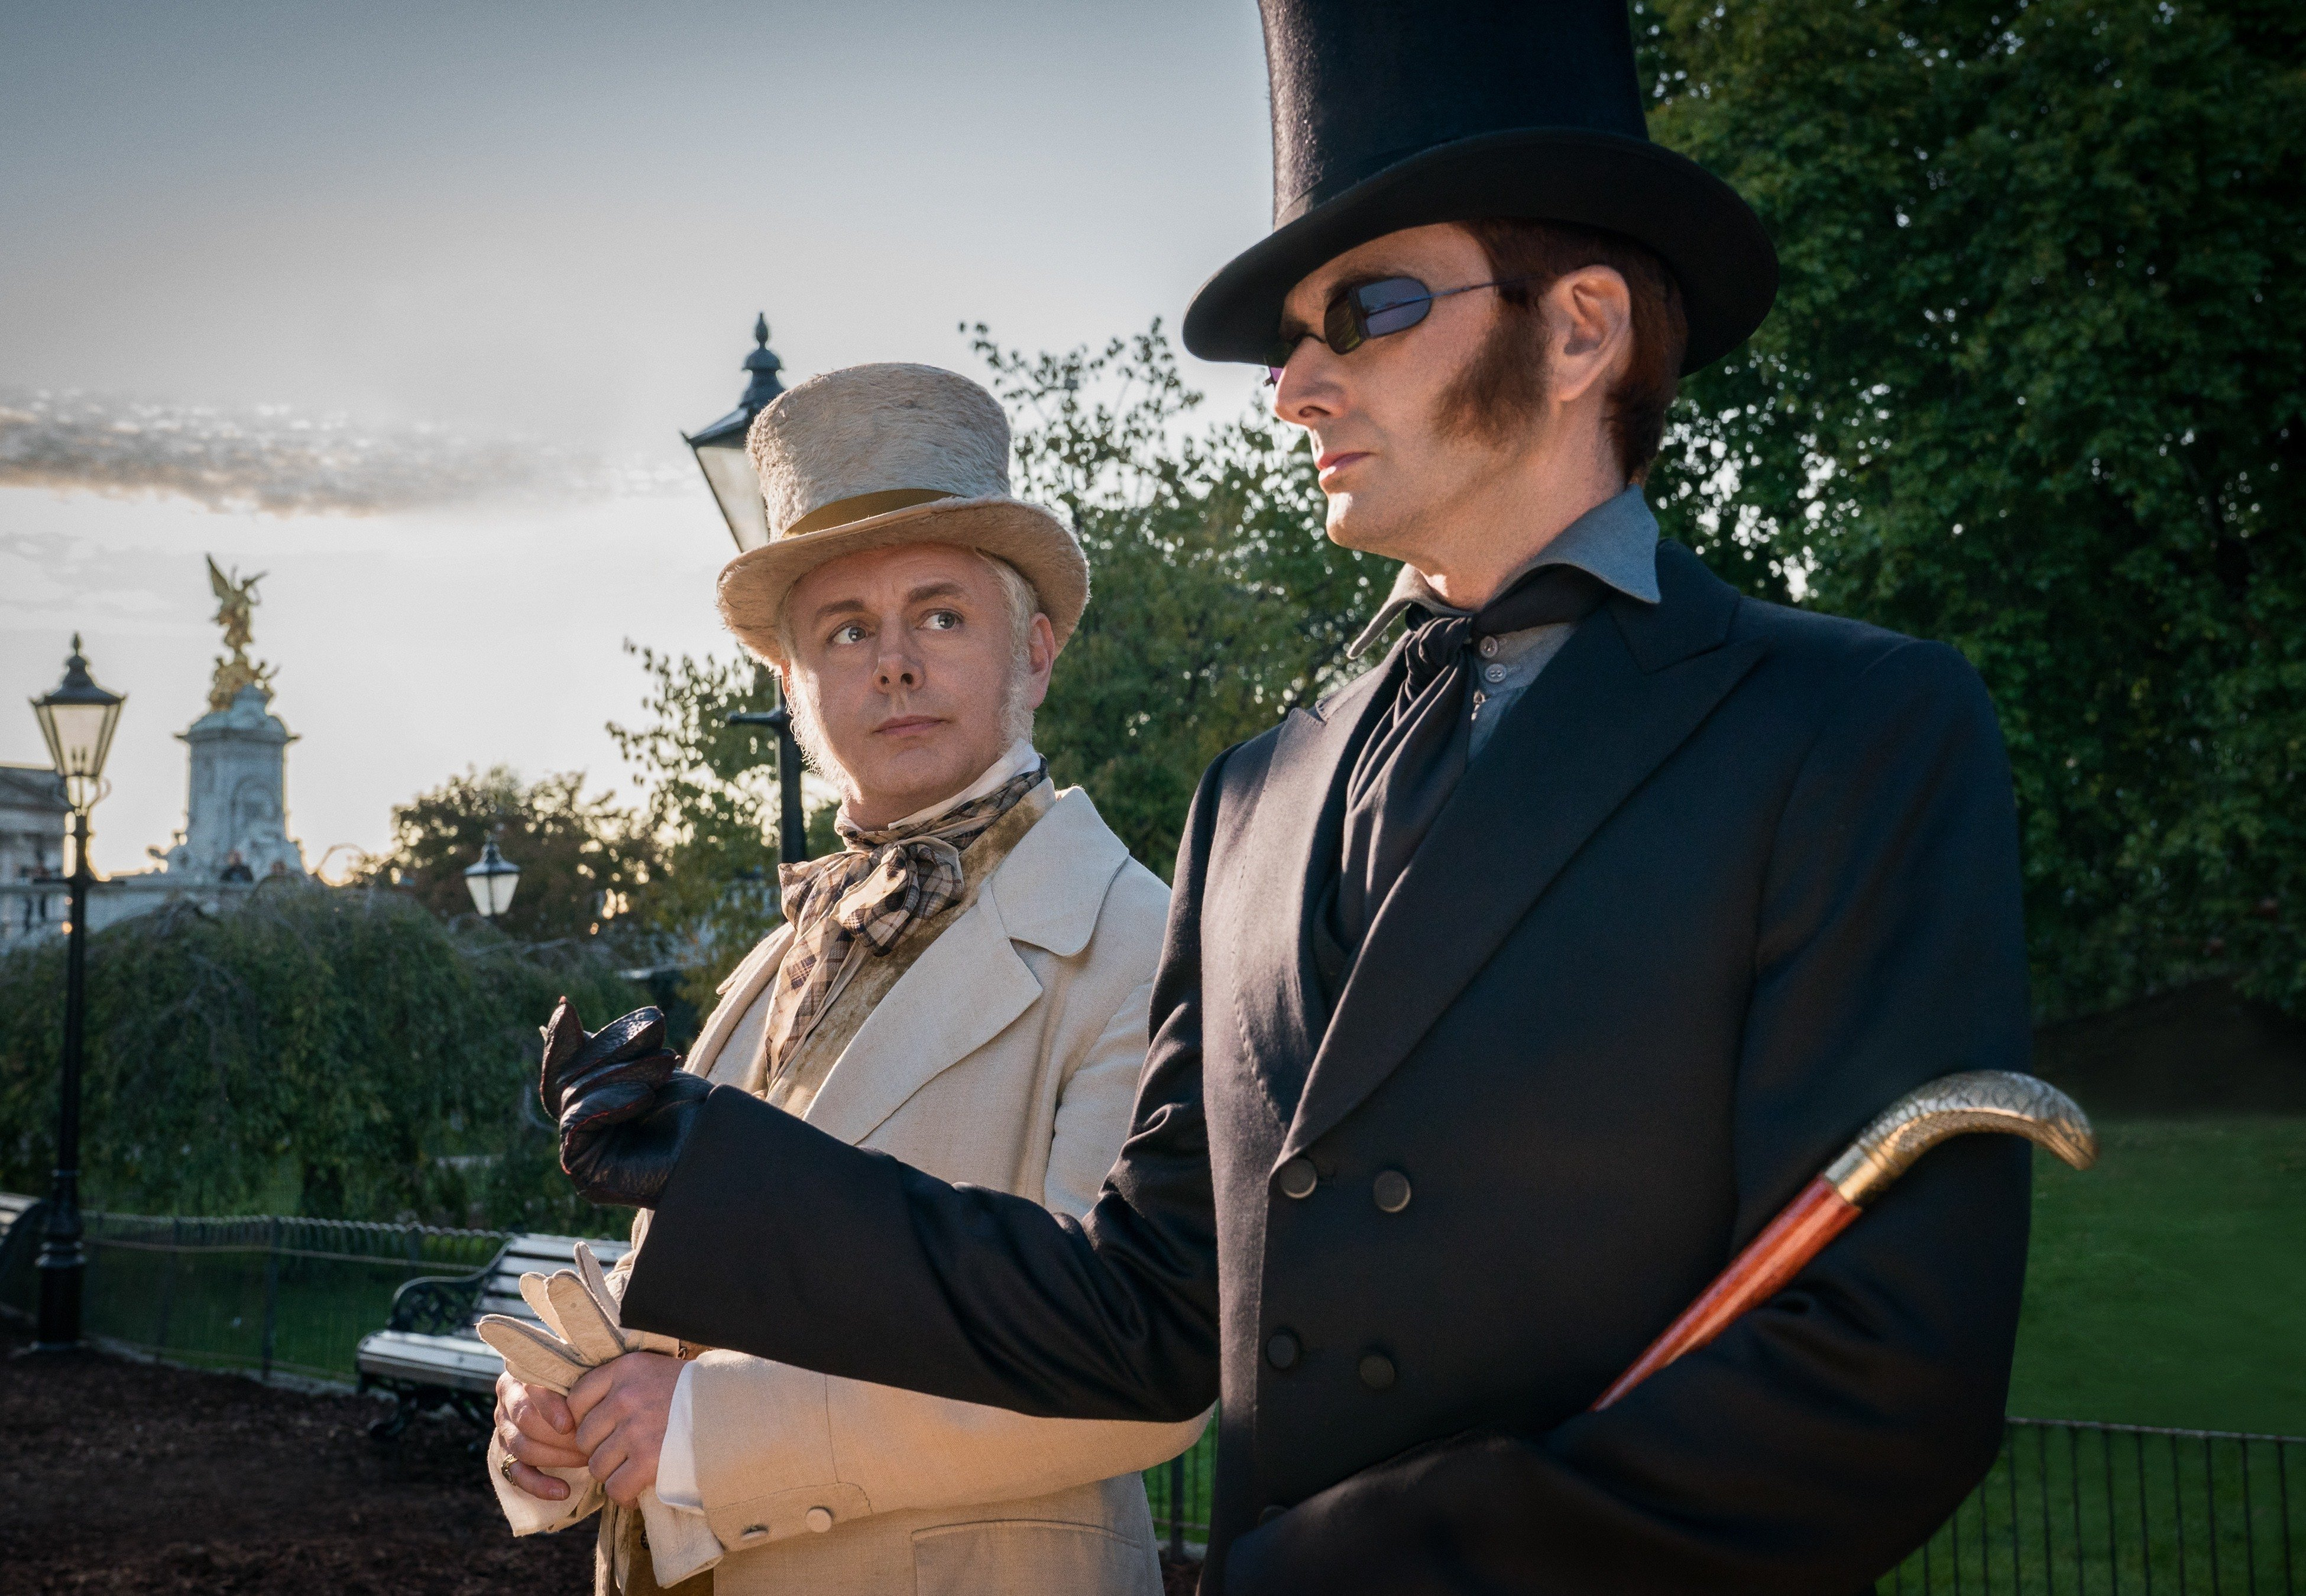 michael-sheen-as-the-angel-aziraphale-and-david-tennant-as-t_d4y1